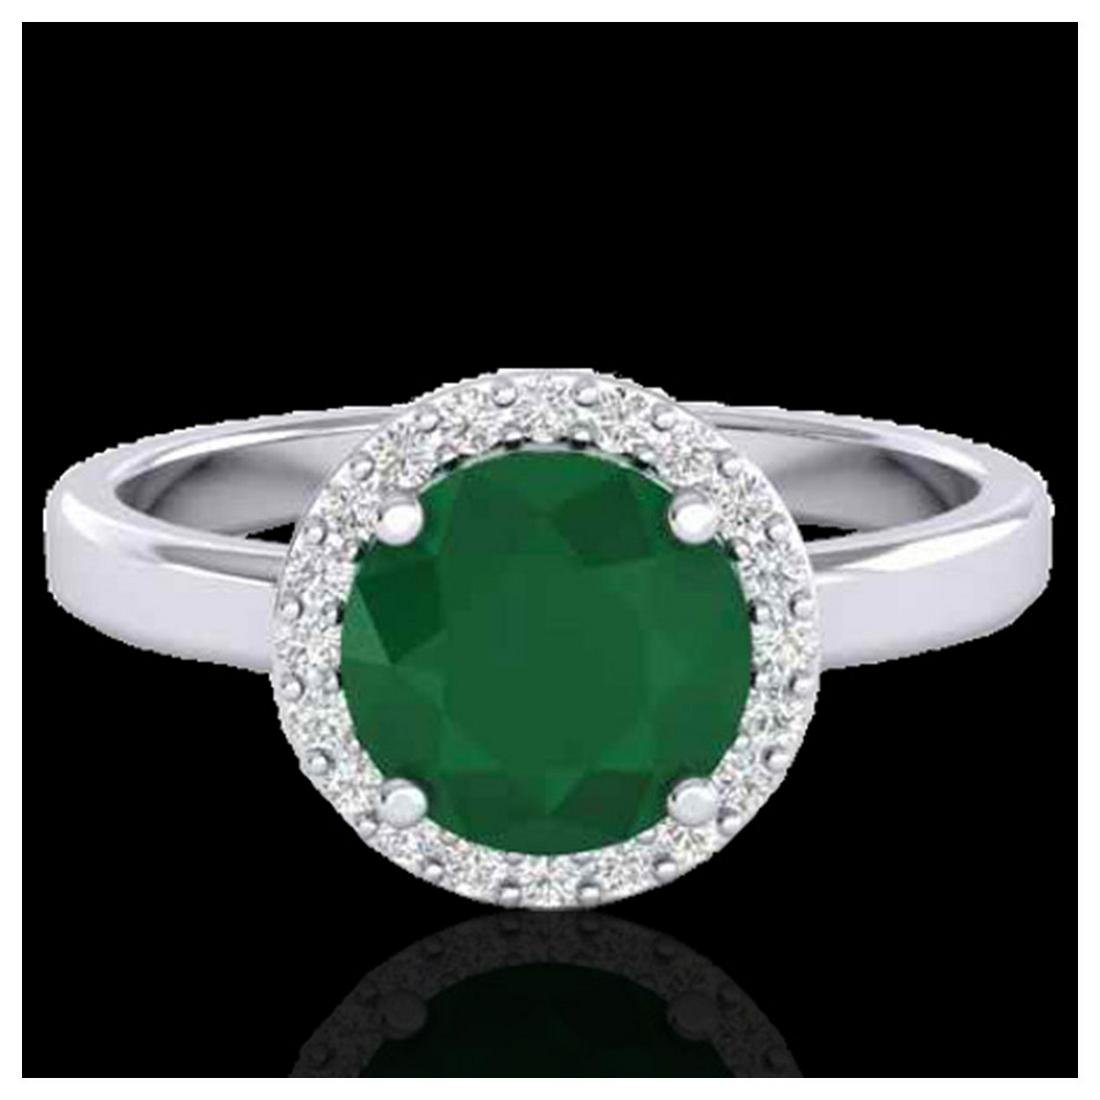 2 ctw Emerald & Halo VS/SI Diamond Ring 18K White Gold